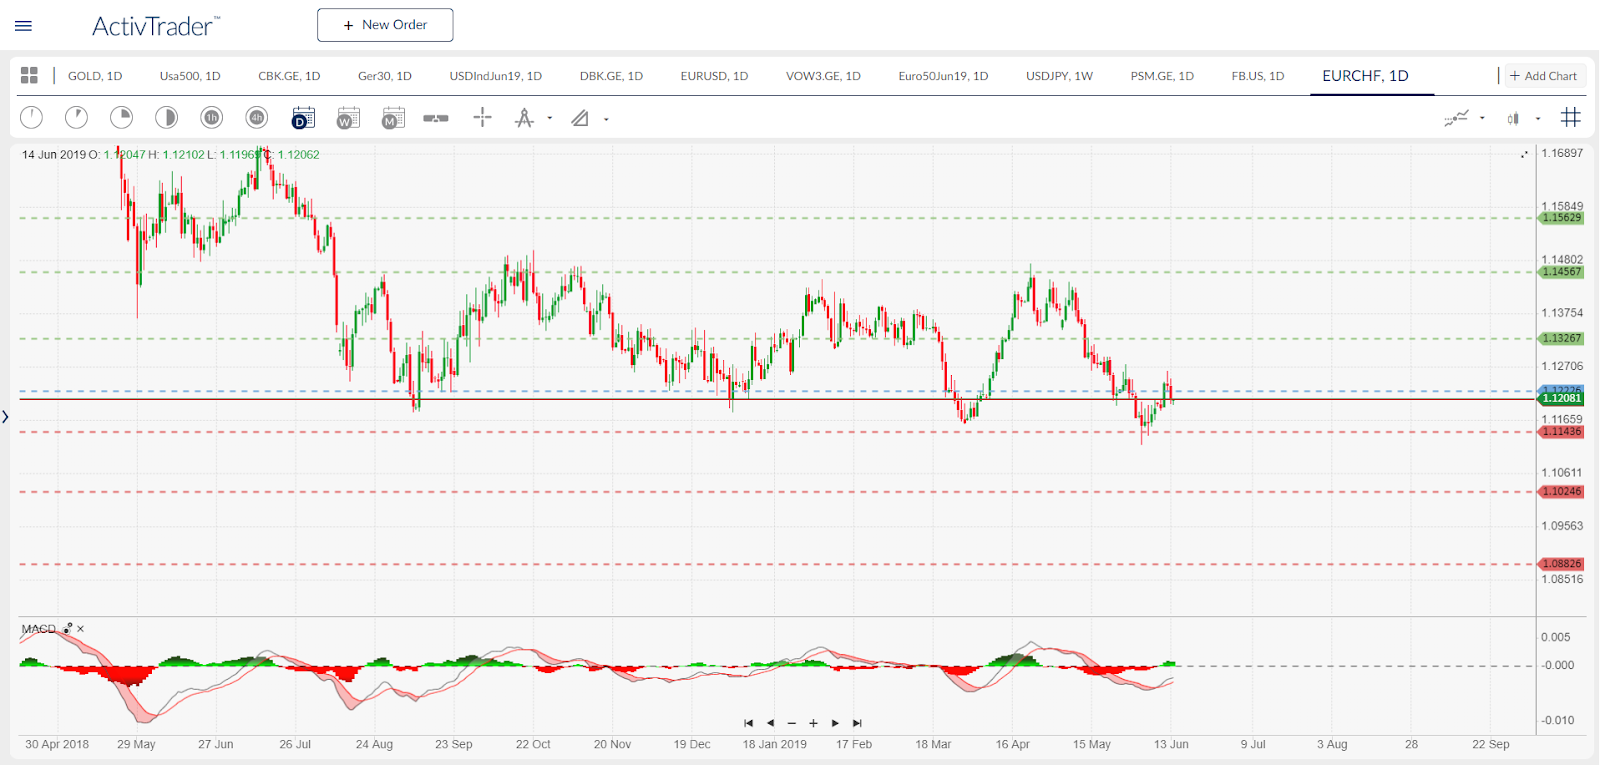 EURCHF Daily Chart Source ActivTrader